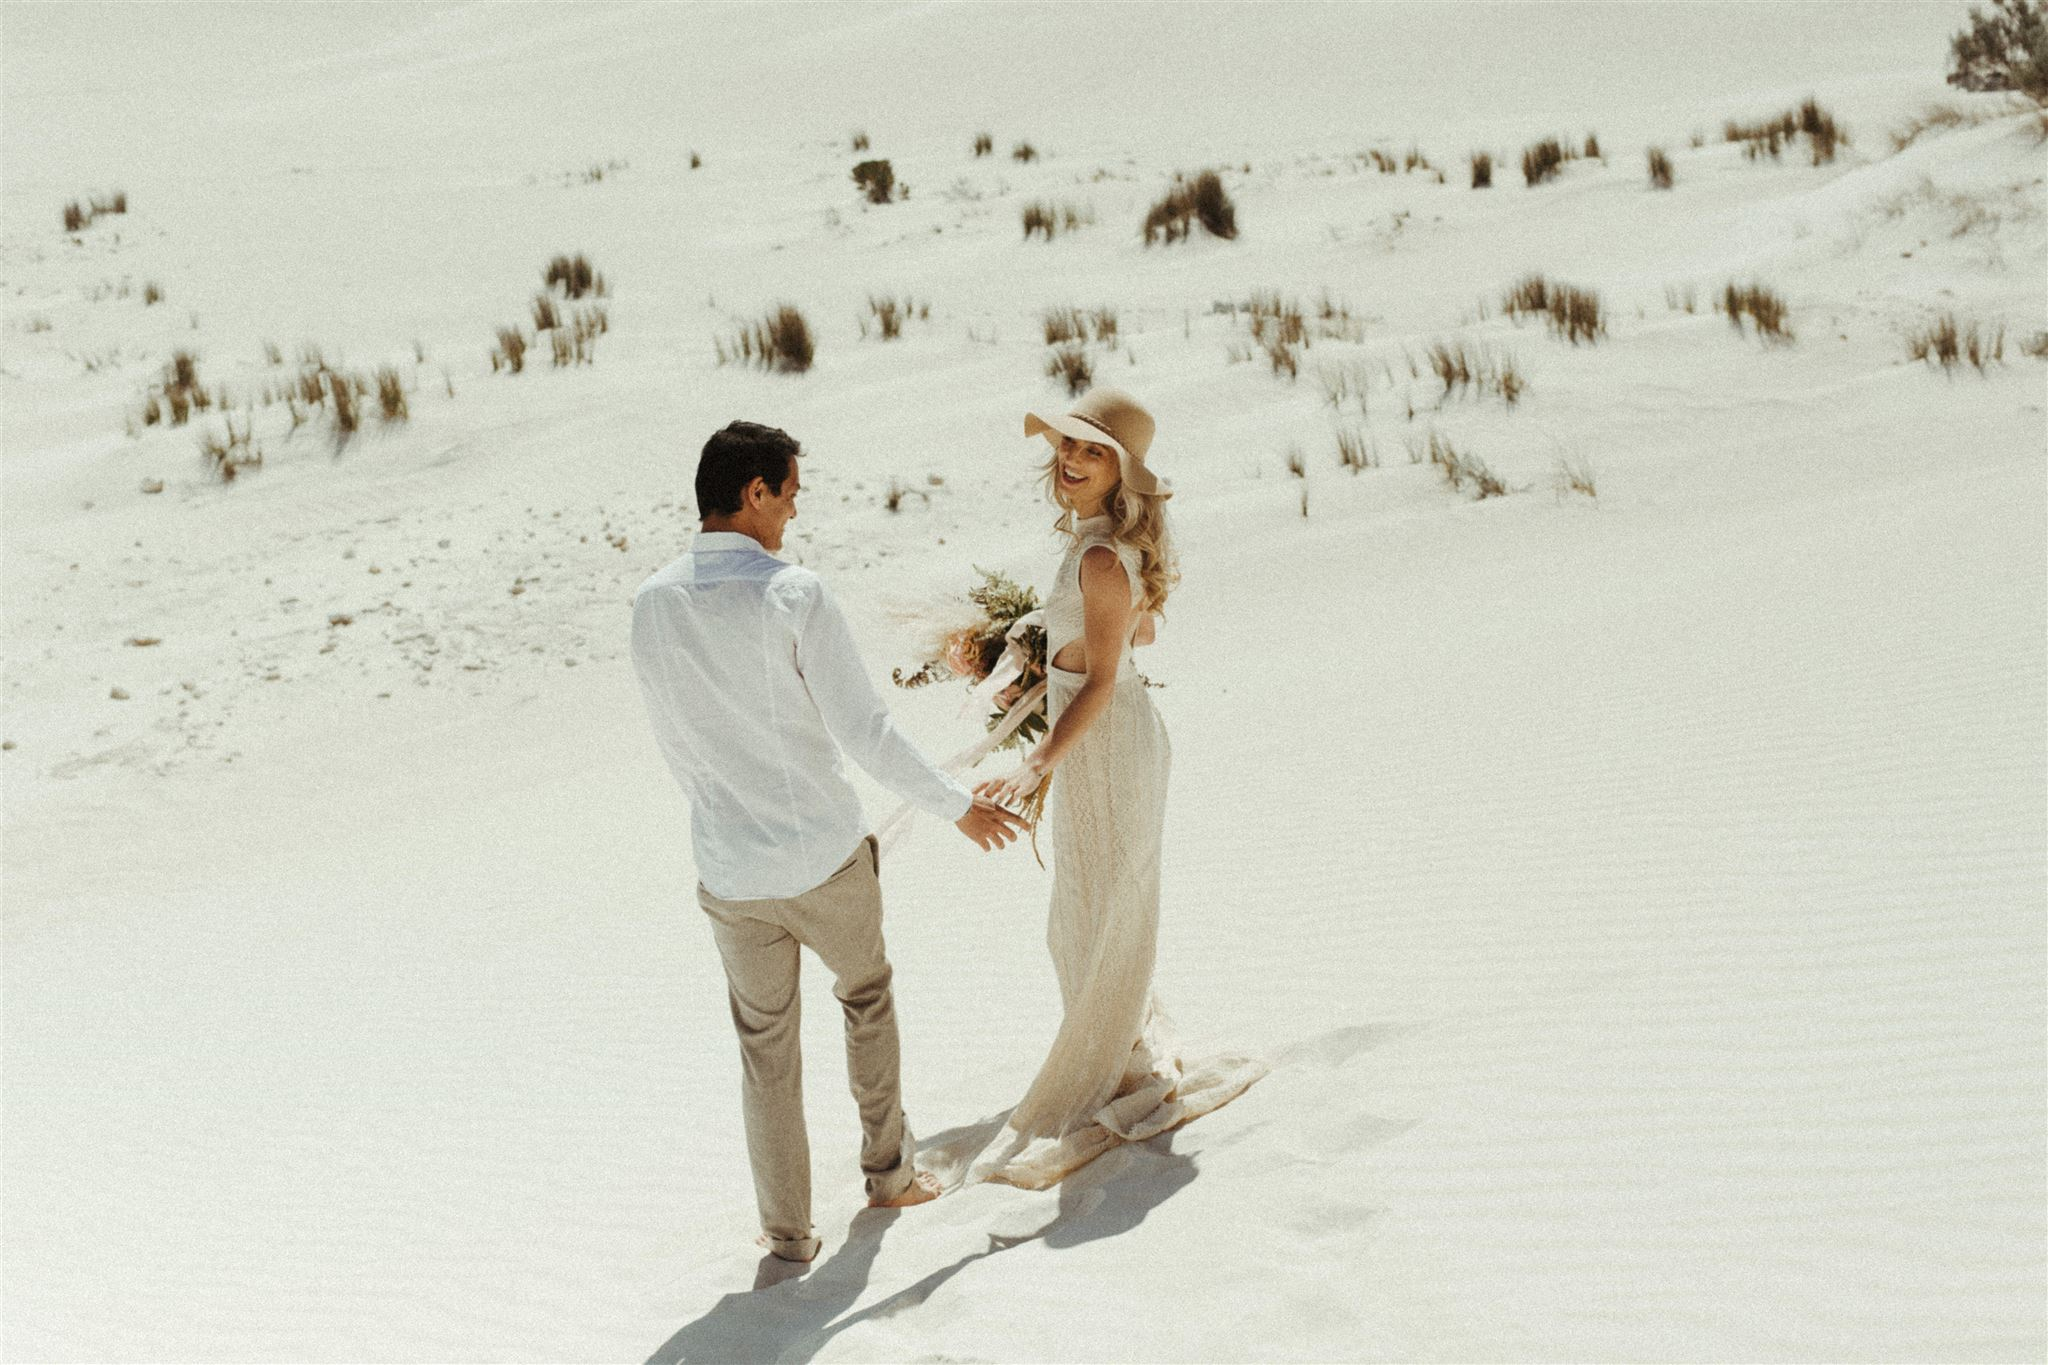 the road west wedding photography perth bridal shoot outdoor boho picnic styling